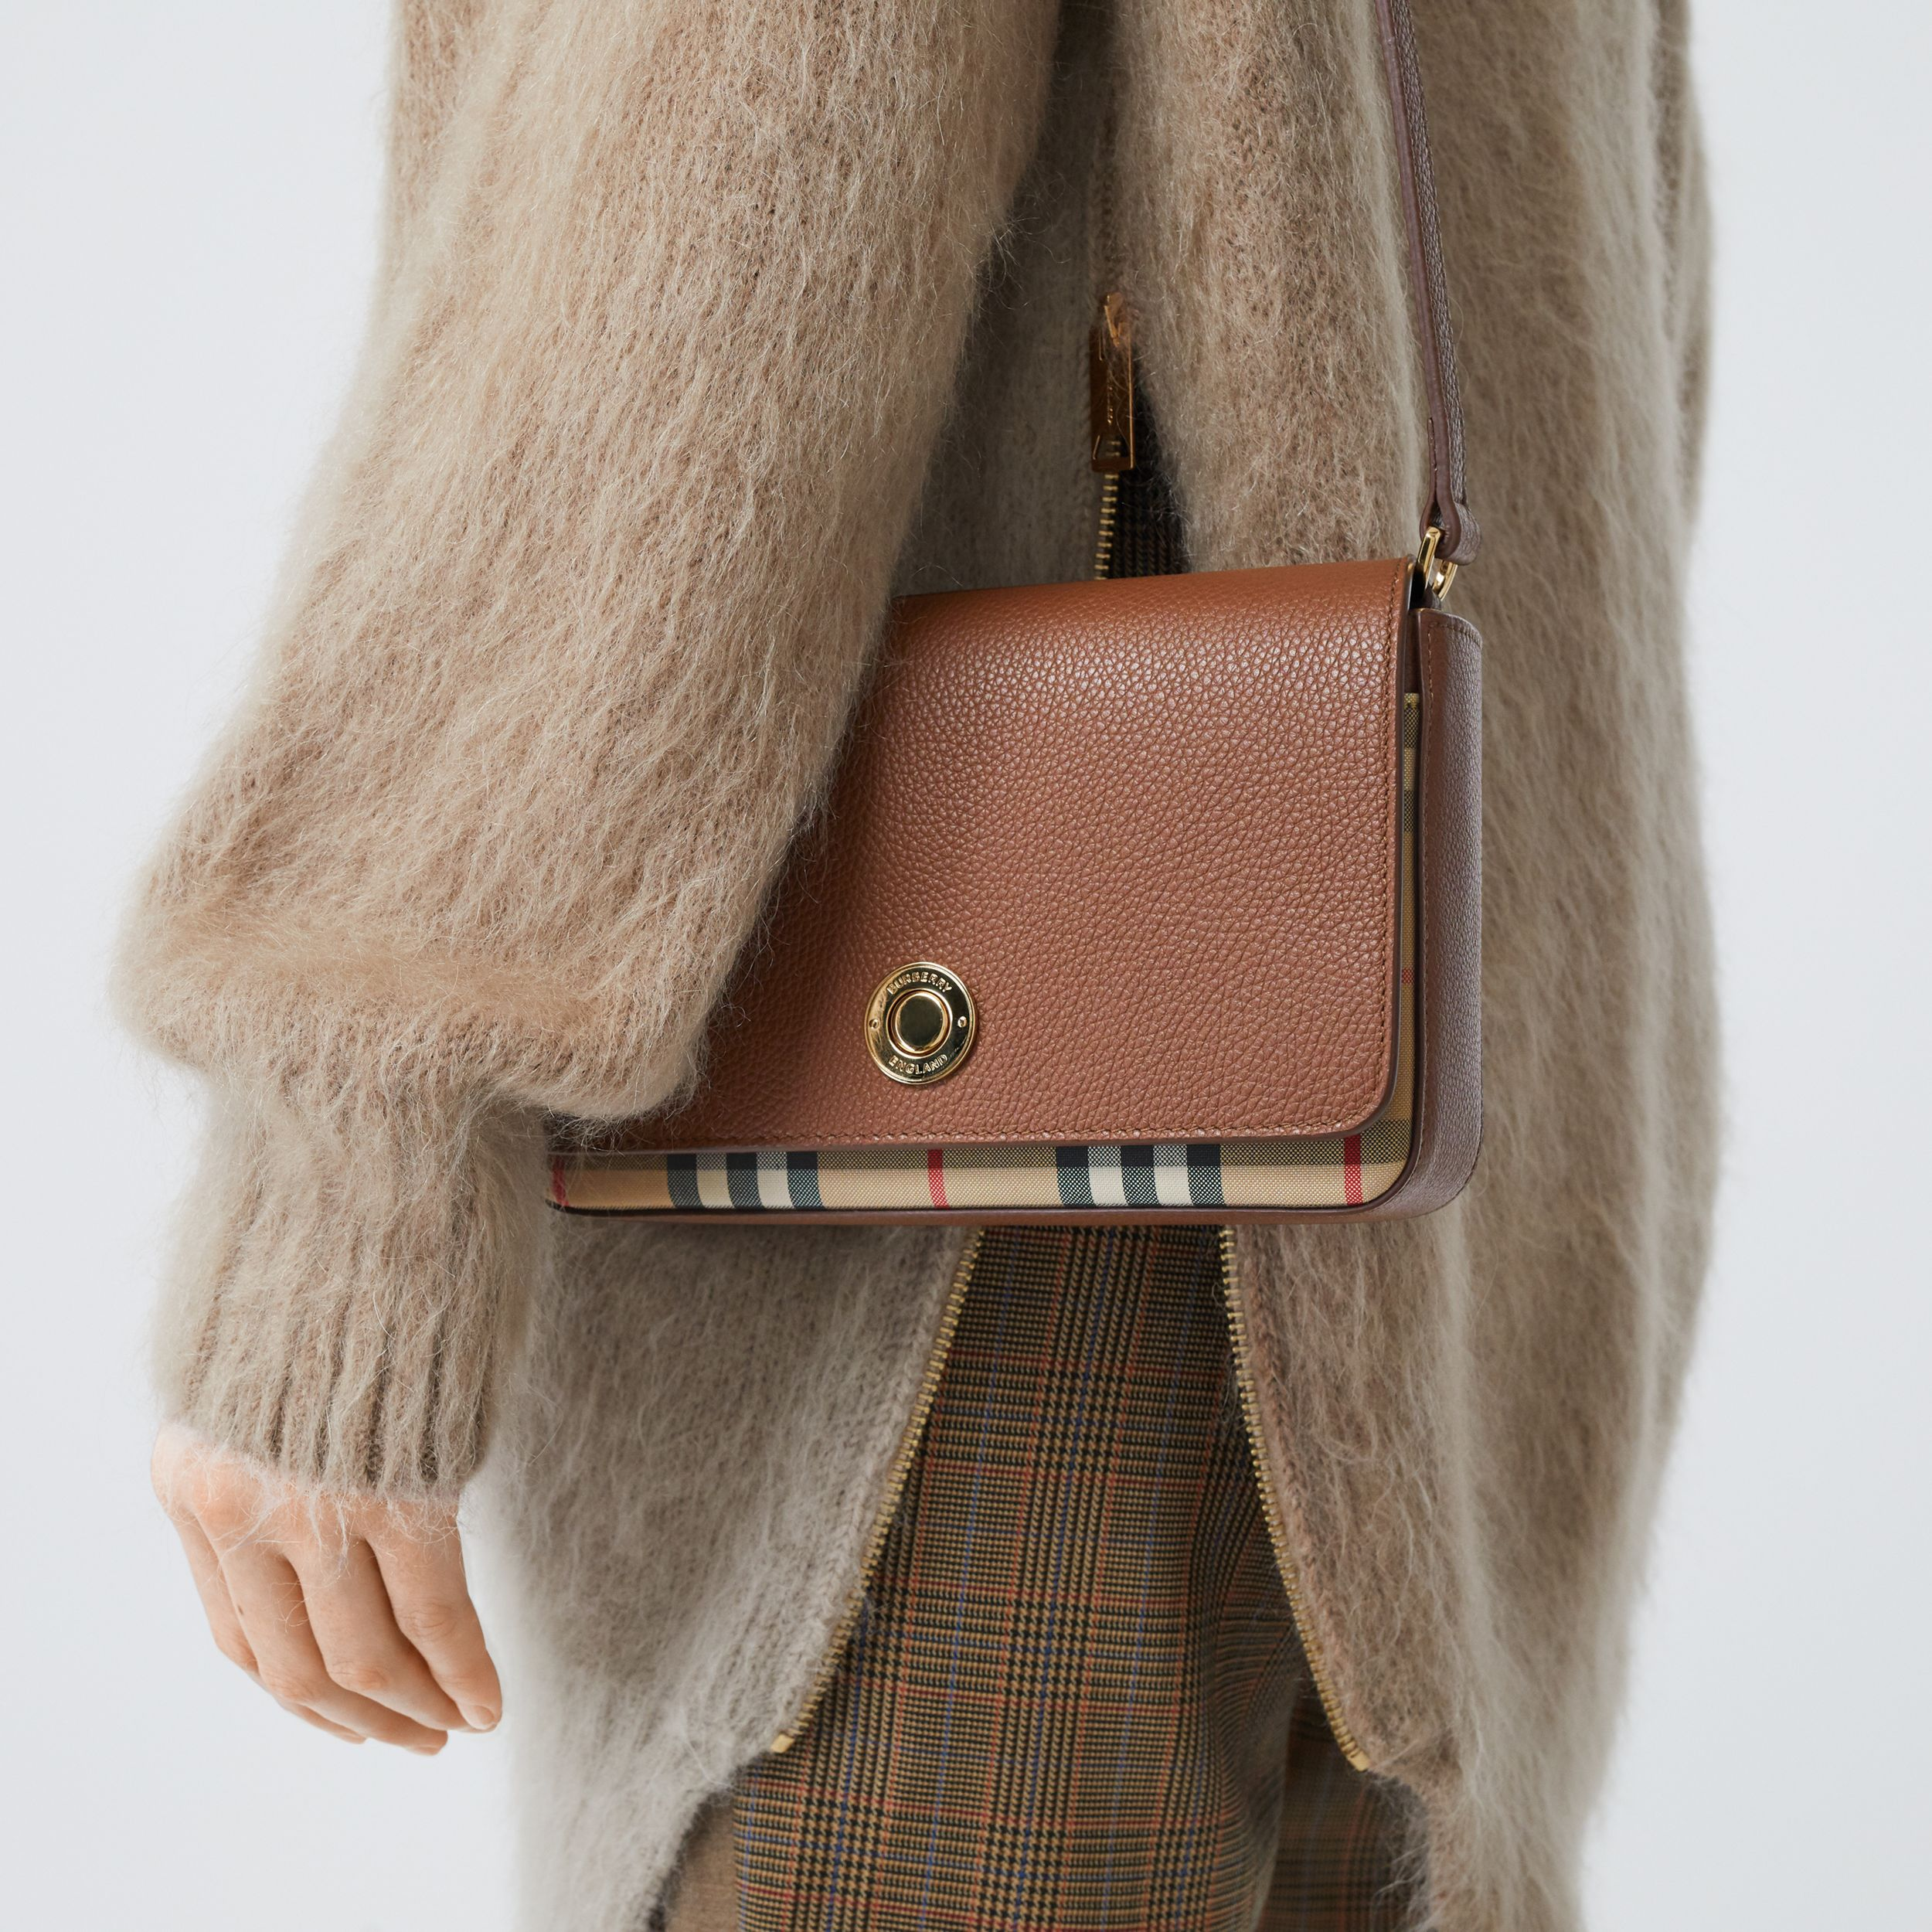 Small Leather and Vintage Check Crossbody Bag in Tan - Women | Burberry - 3